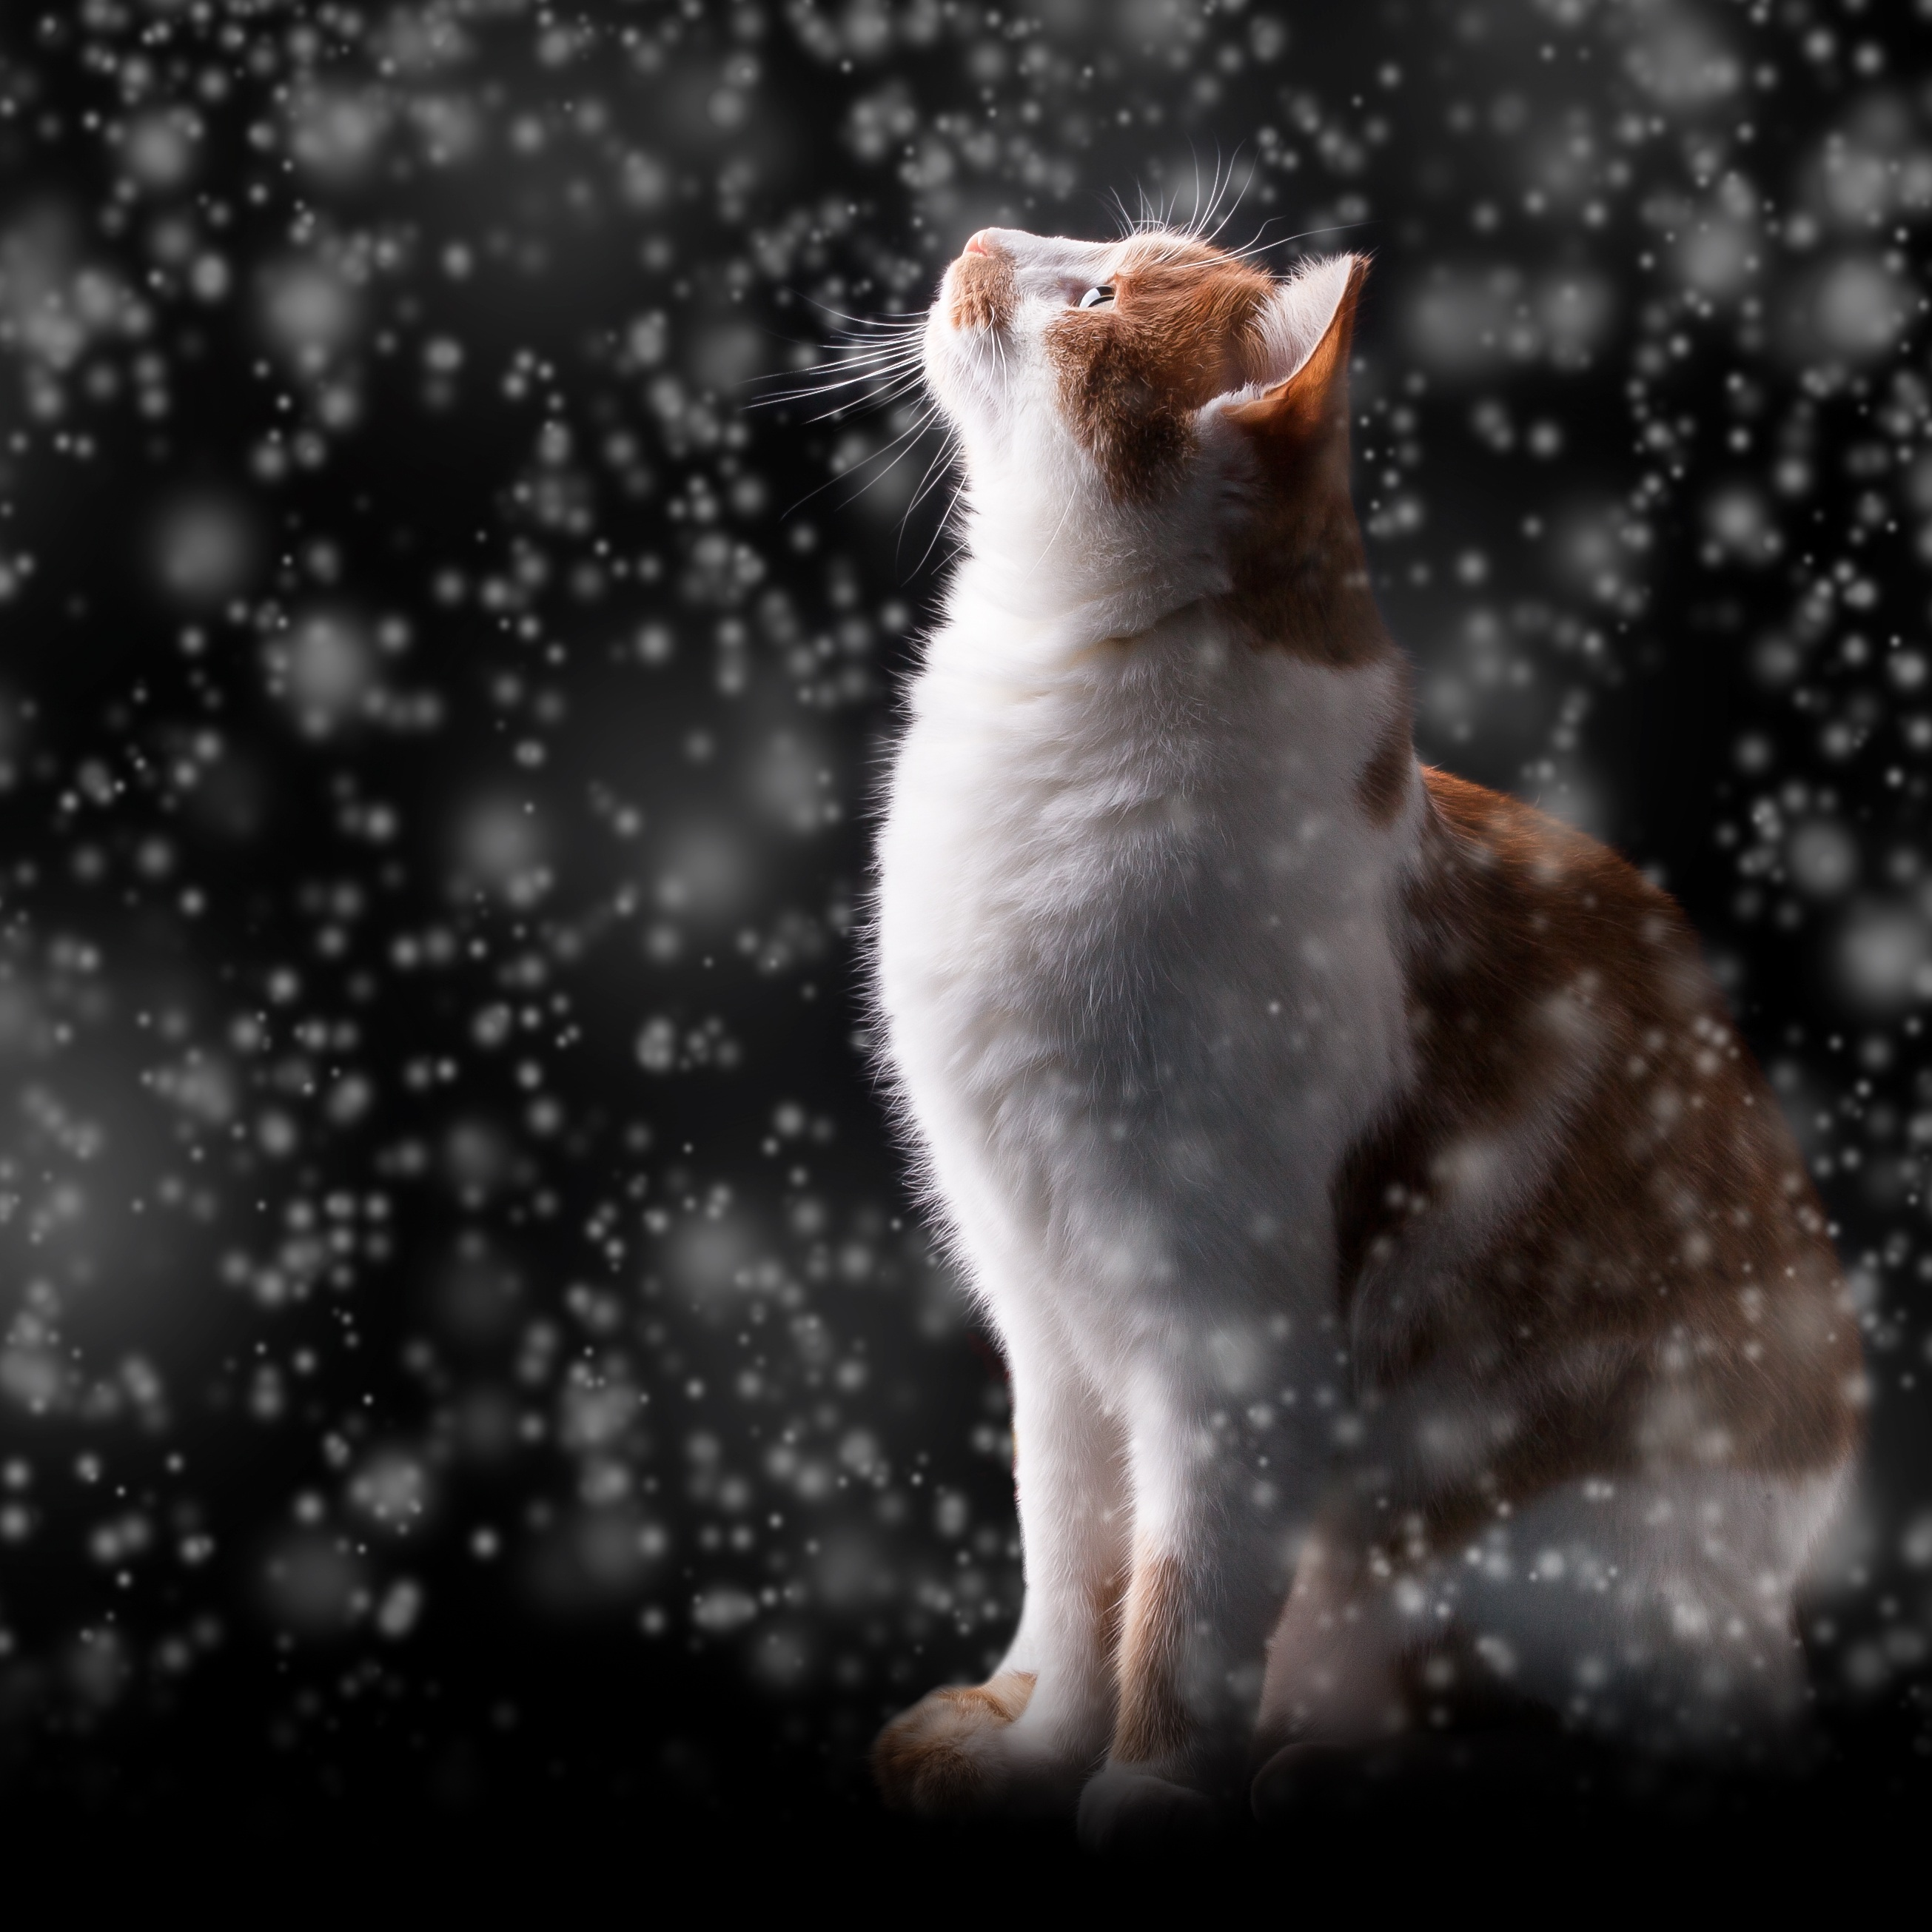 131986 Screensavers and Wallpapers Photoshop for phone. Download Animals, Snow, Glare, Cat, Photoshop, Bokeh, Boquet, Snowfall pictures for free